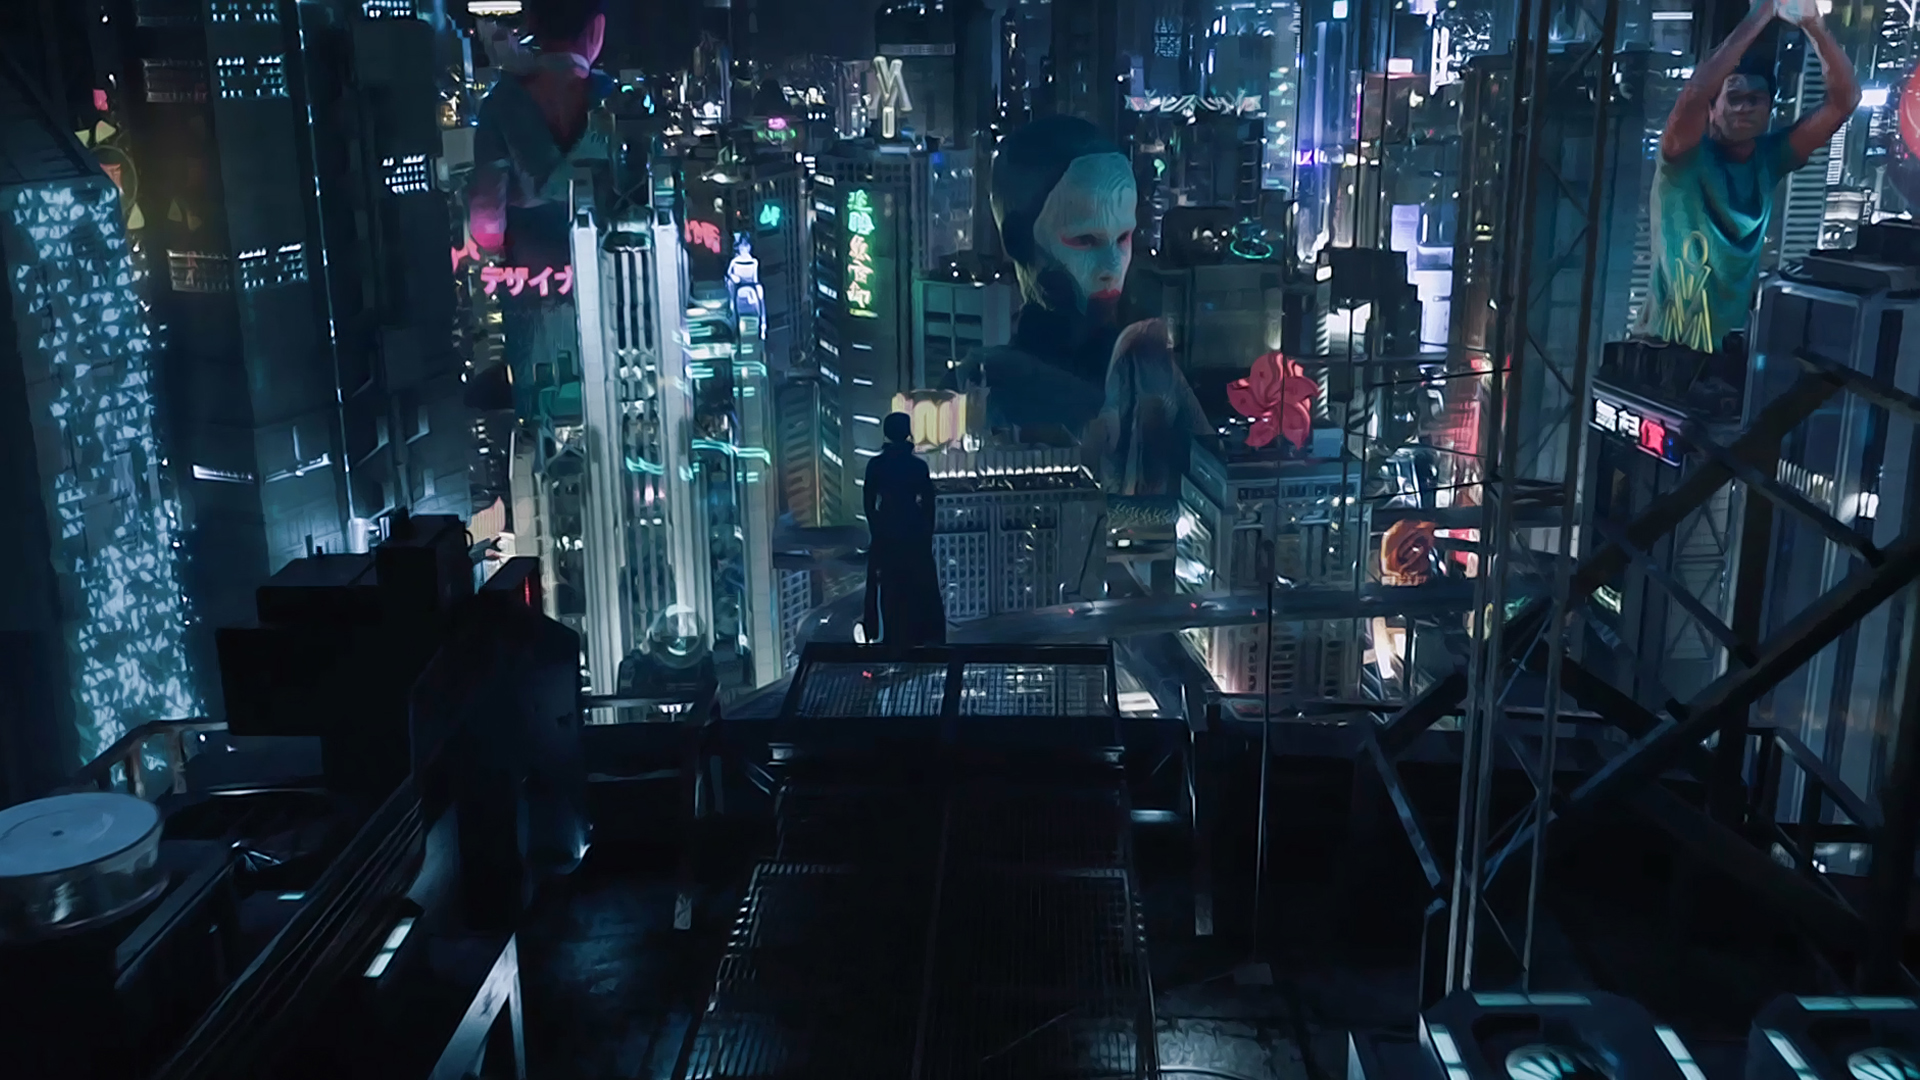 Ghost In The Shell Wallpaper Ghost In The Shell City Movie